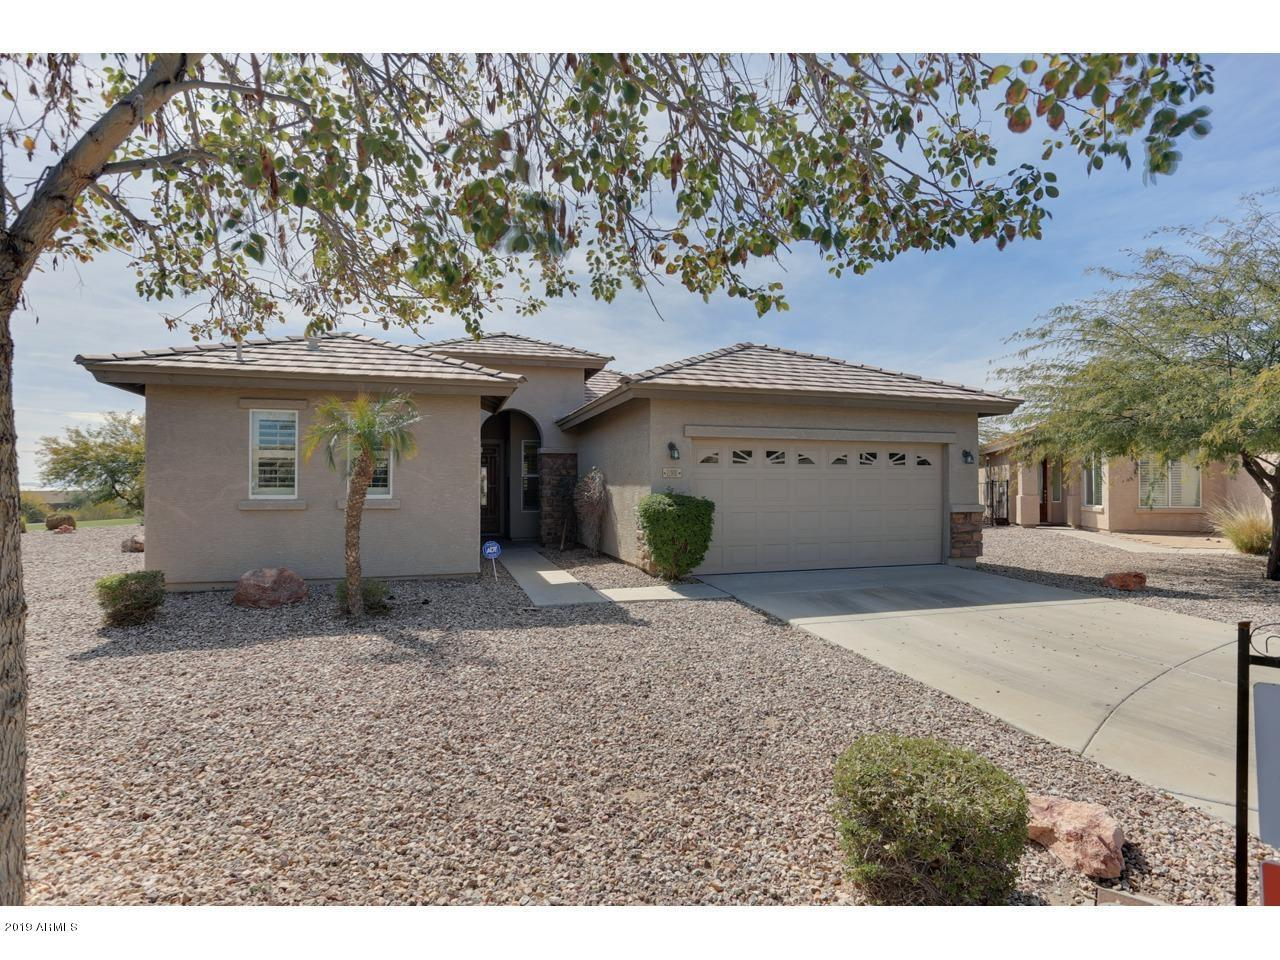 22881 Lasso Lane - Photo 1